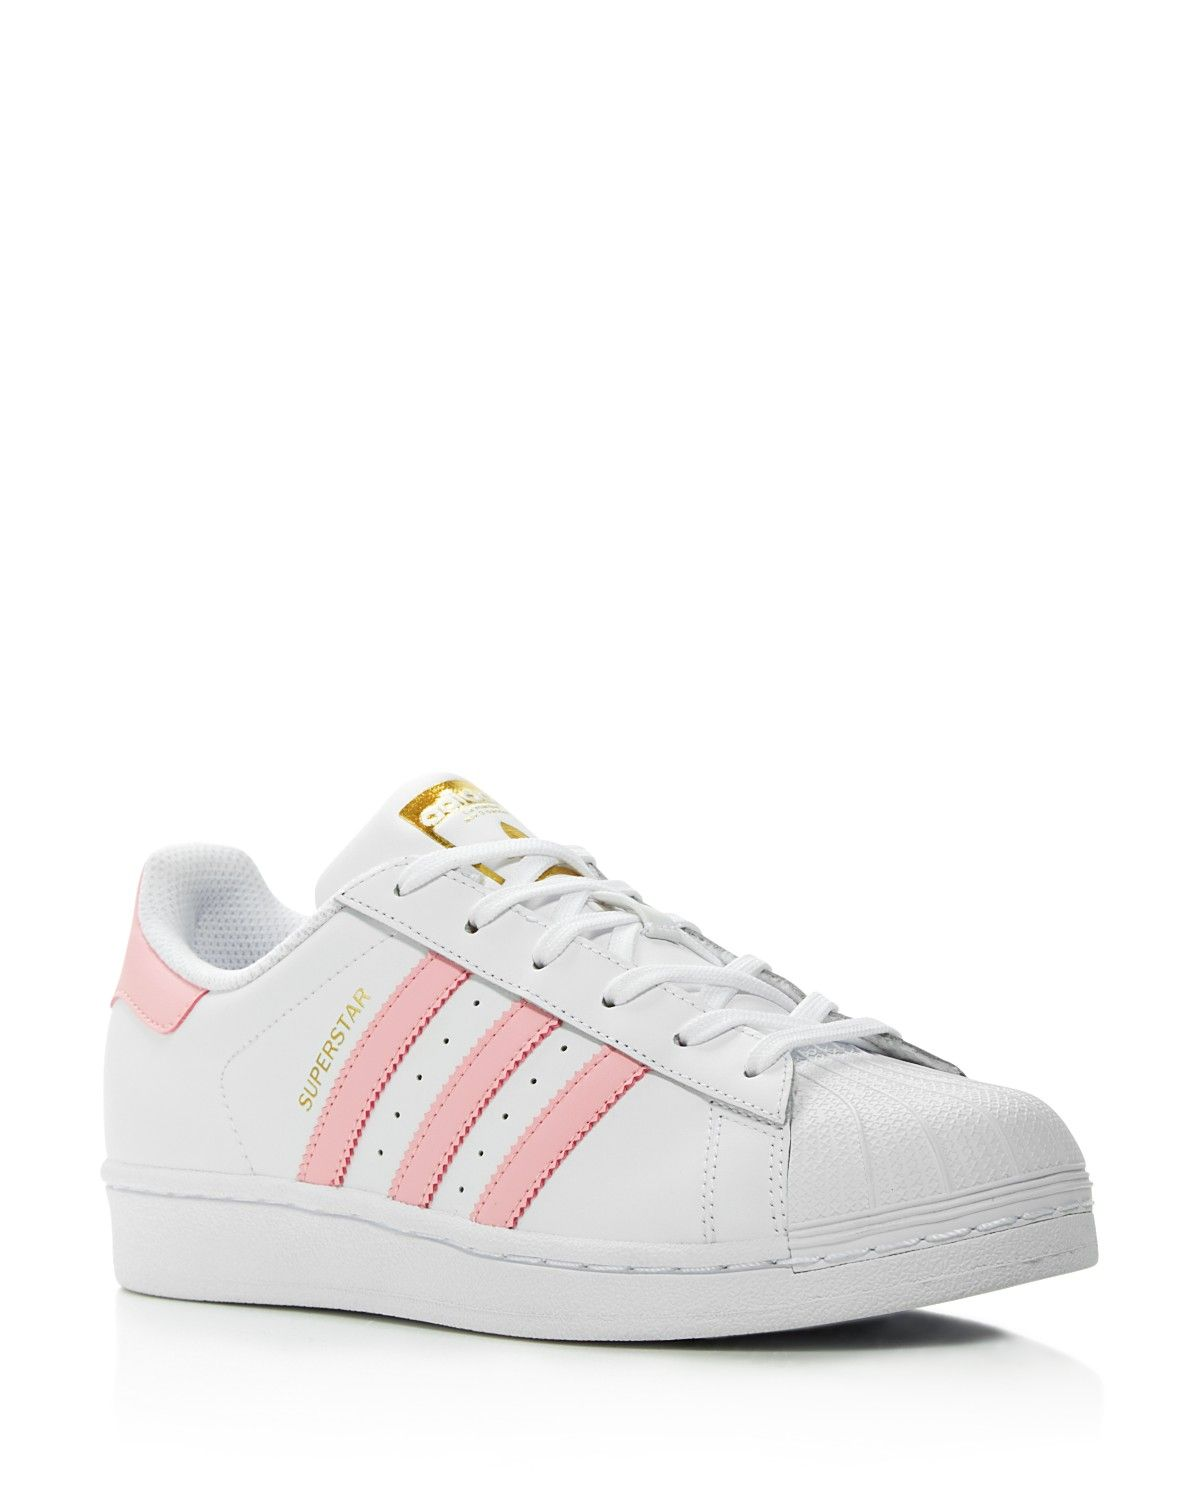 20ba408b0fb5 Adidas Women 39 s Superstar Foundation Lace Up Sneakers